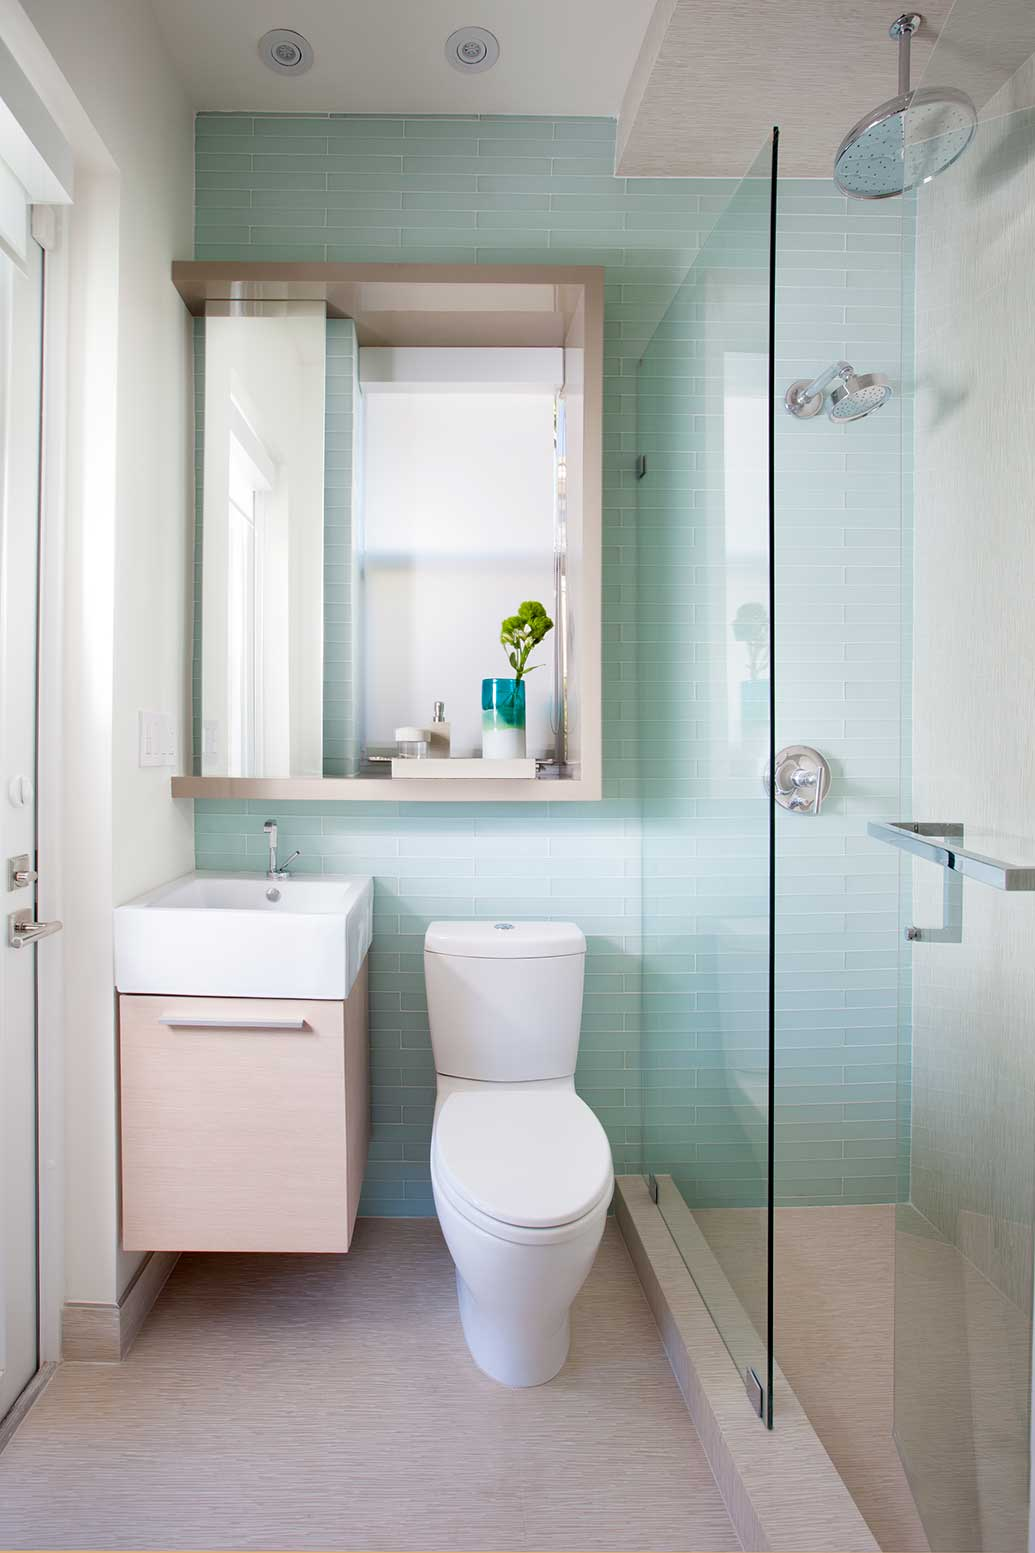 Bathroom Design Miami Italgres Showroom Dkor Interiors Residential Design  Projects